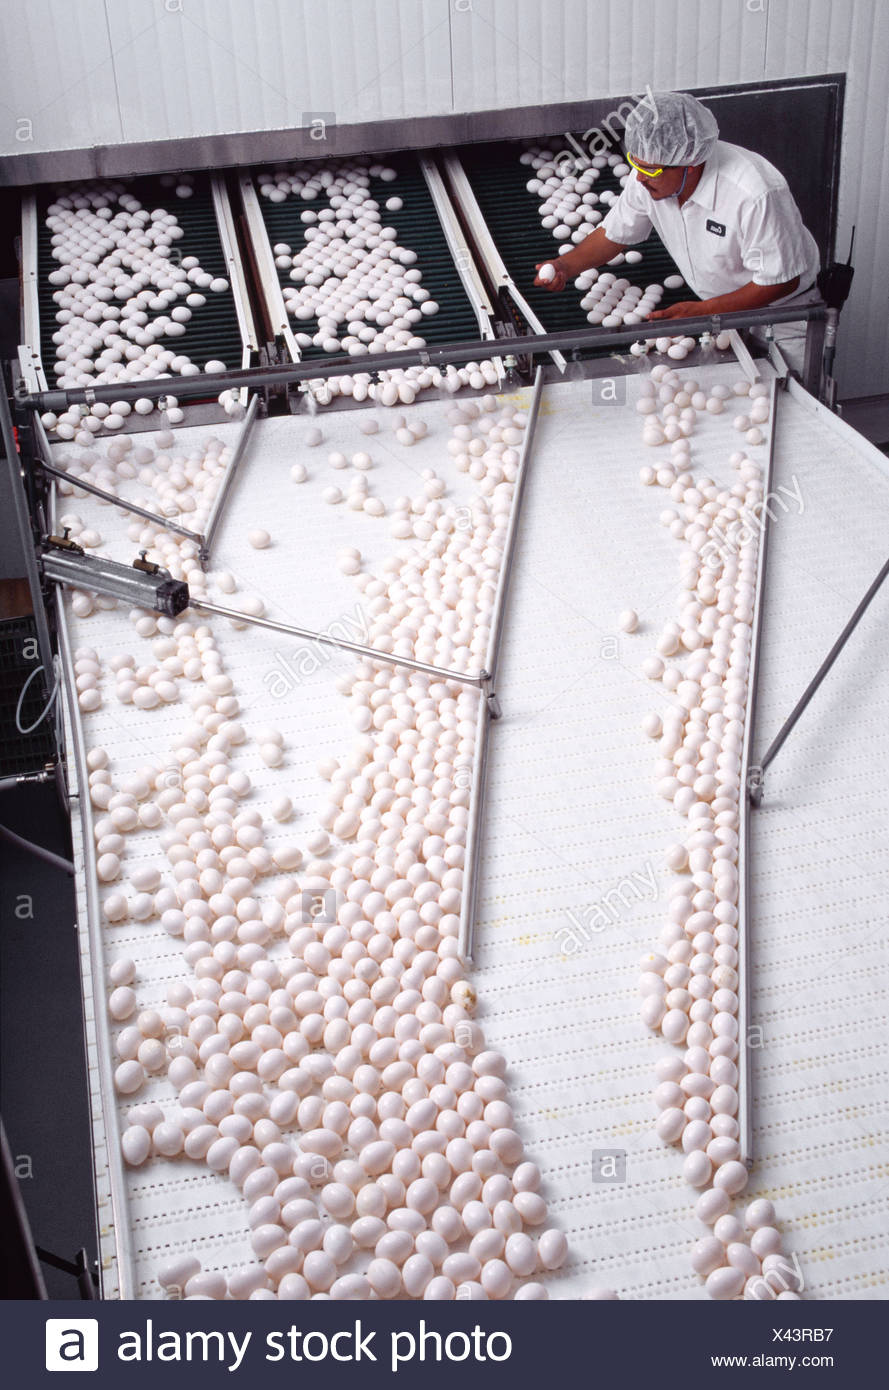 Agriculture - A worker inspects fresh eggs on a conveyor line at an egg packing plant / Minnesota, USA. - Stock Image